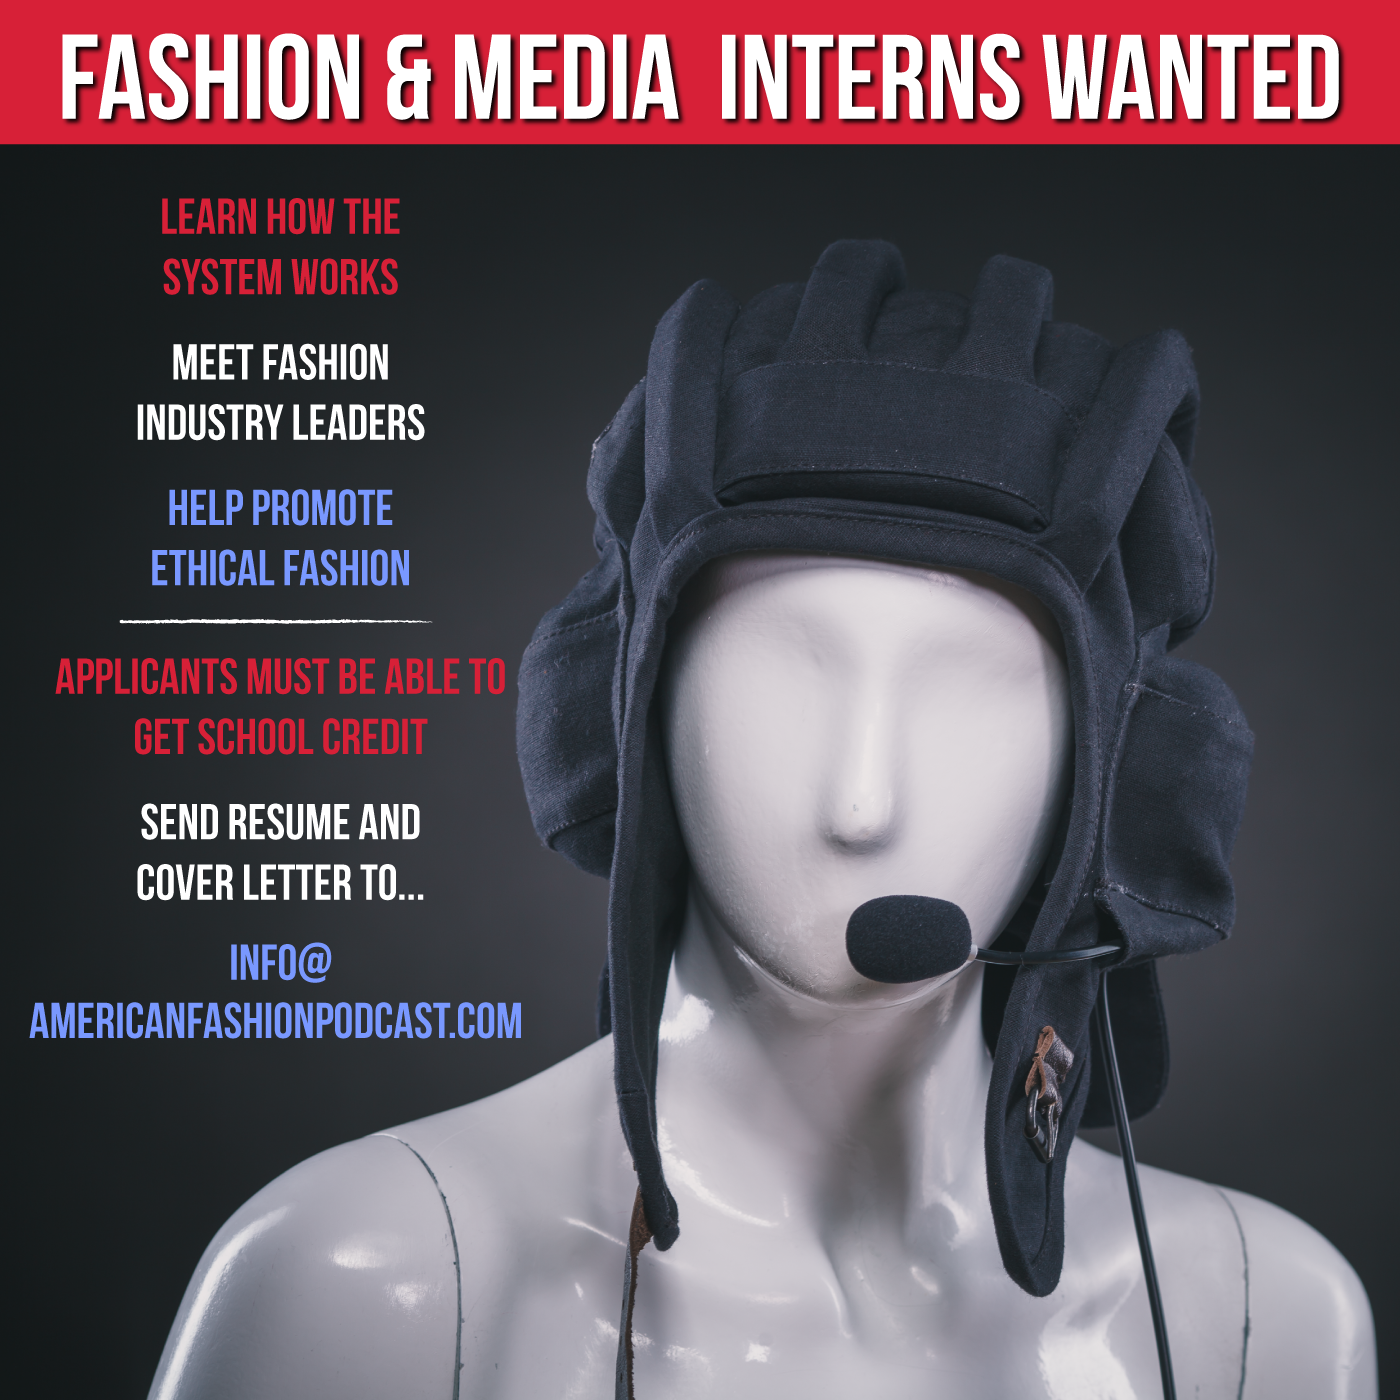 Fashion Media Internship